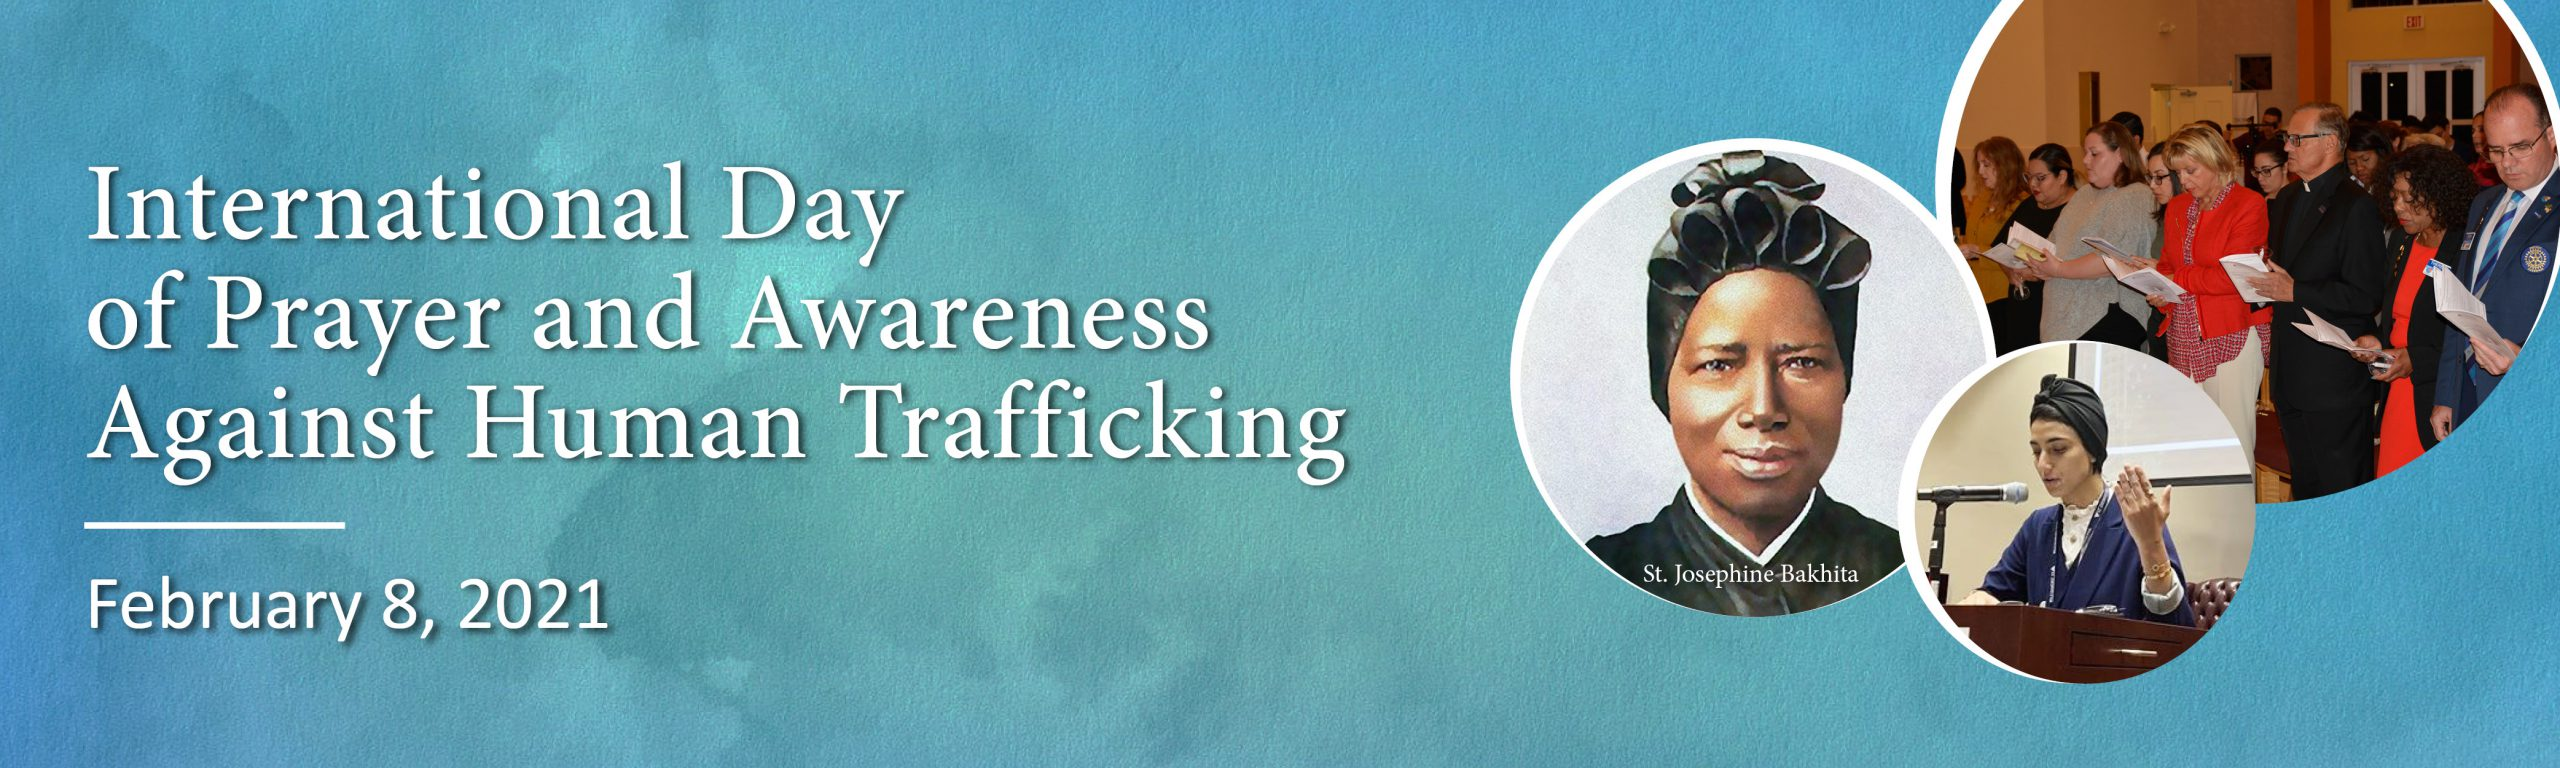 International Day of Prayer and Awareness Against Human Trafficking Event  Series - Human Trafficking Academy